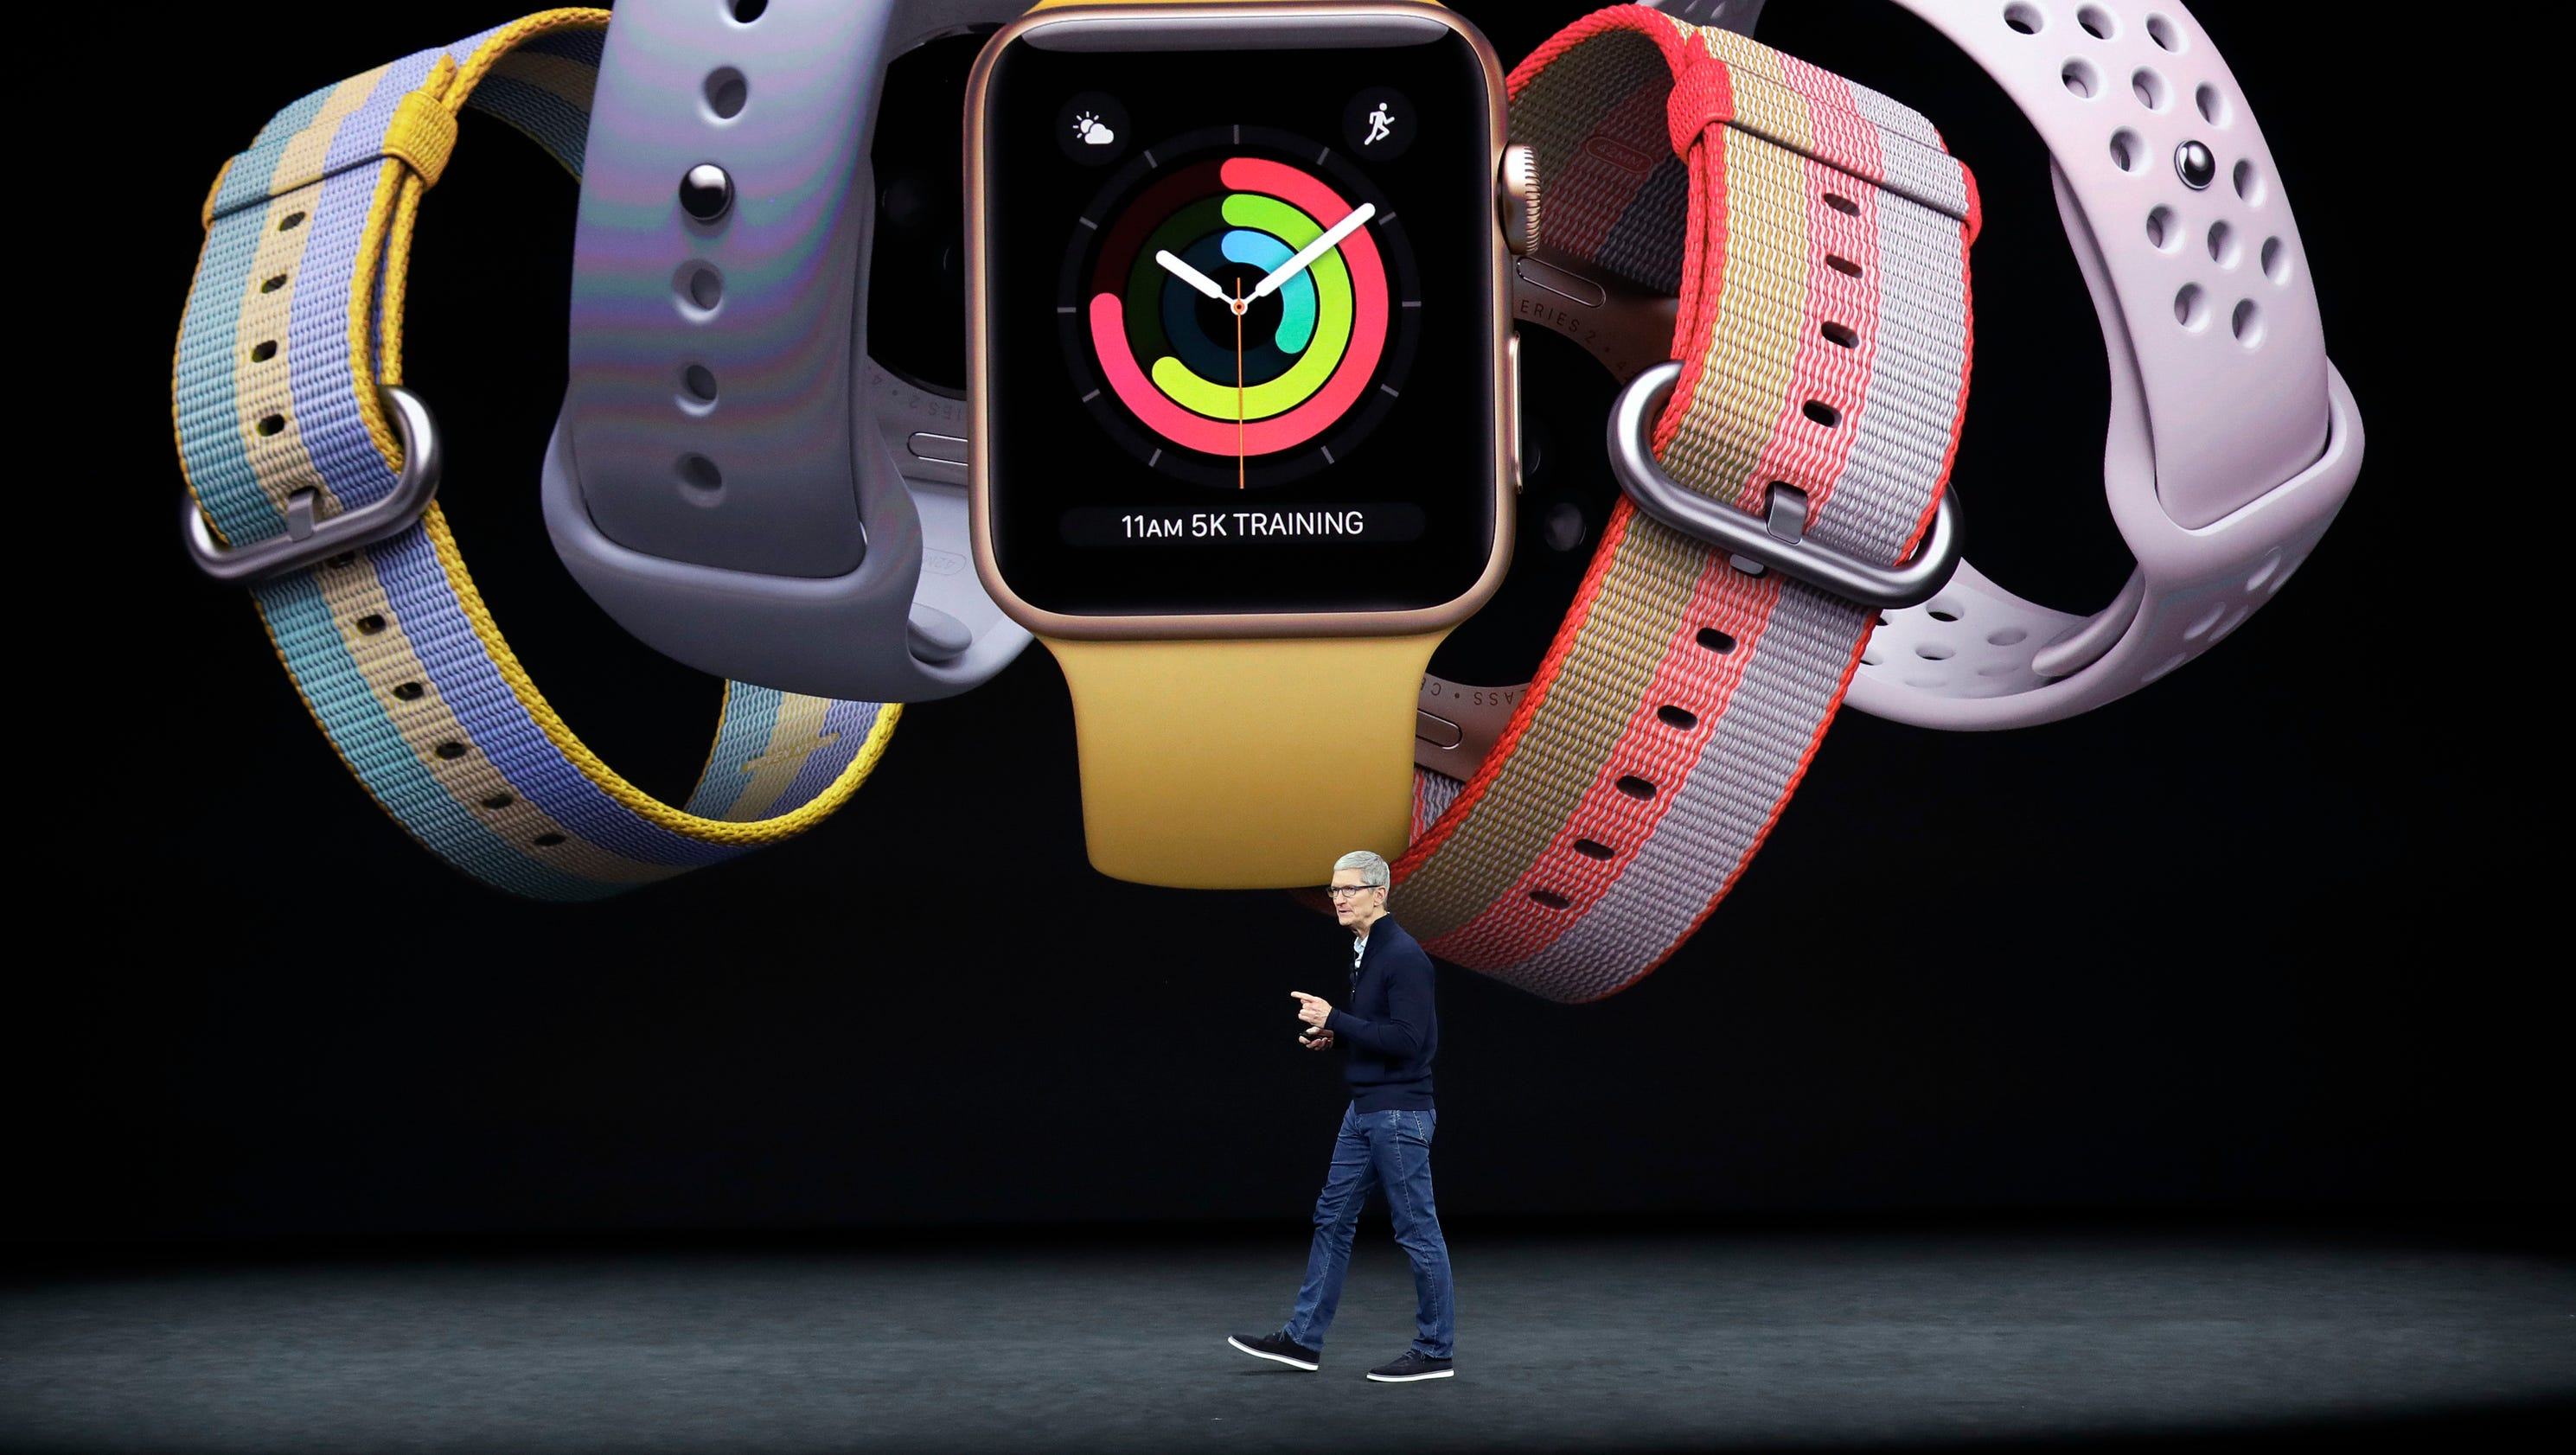 Apple Watch Series 3 reviews are out and here's what people are saying